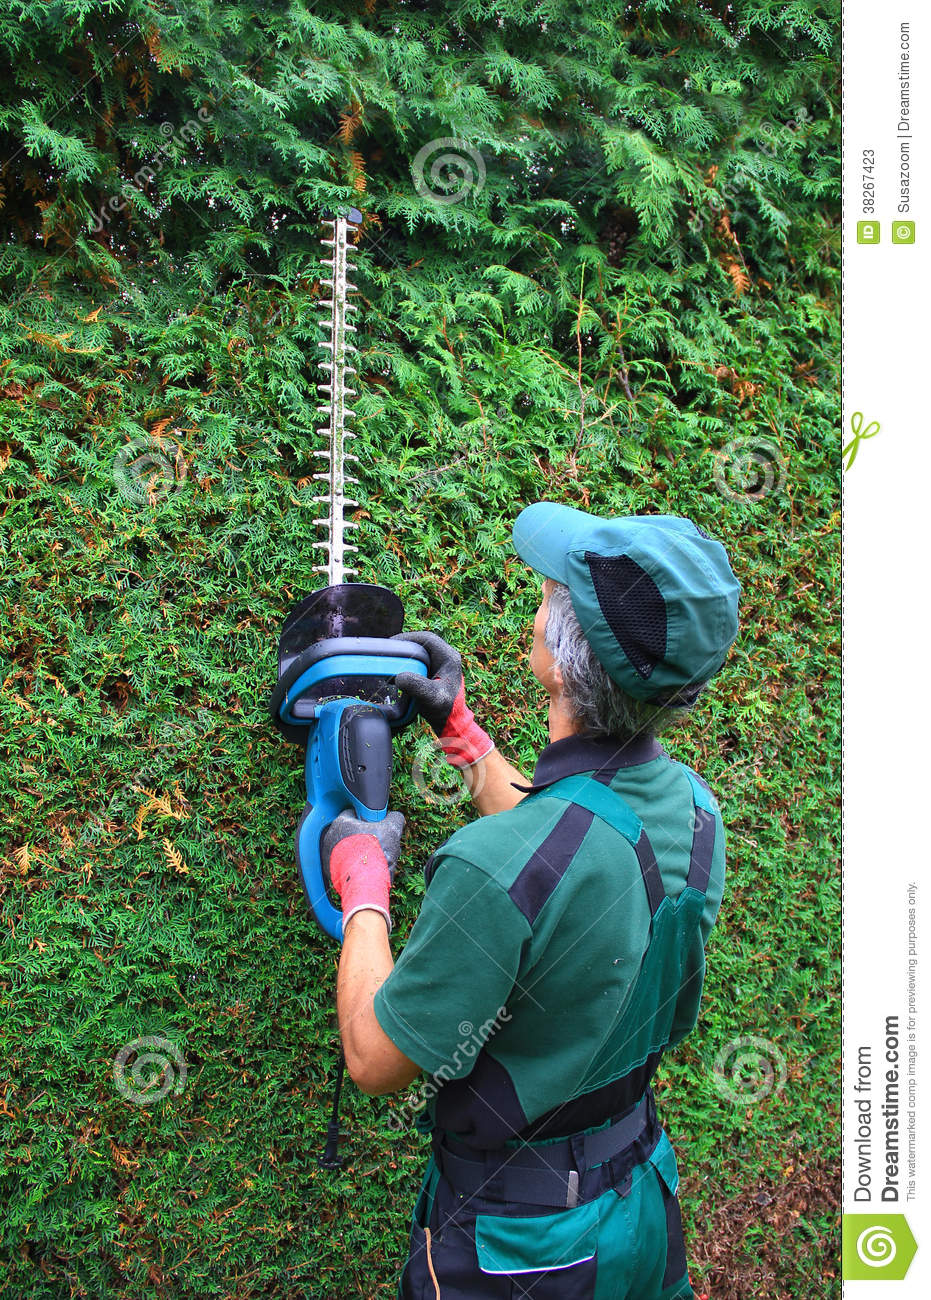 Gardener Cutting Thuja Hedge With Hedge Clippers Stock Photos.